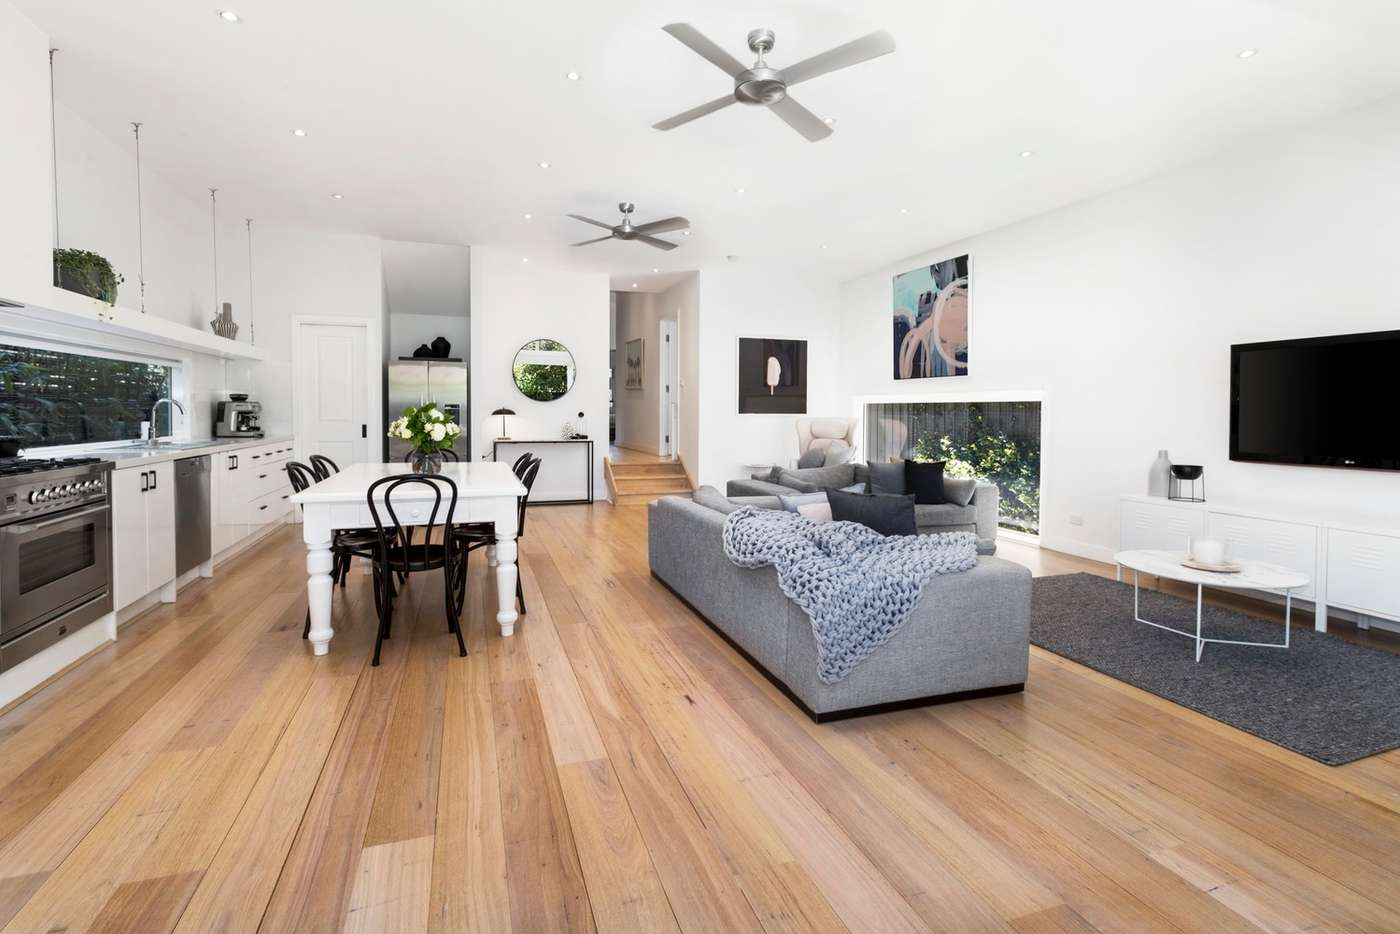 Fifth view of Homely house listing, 36 Poplar Street, Caulfield South VIC 3162